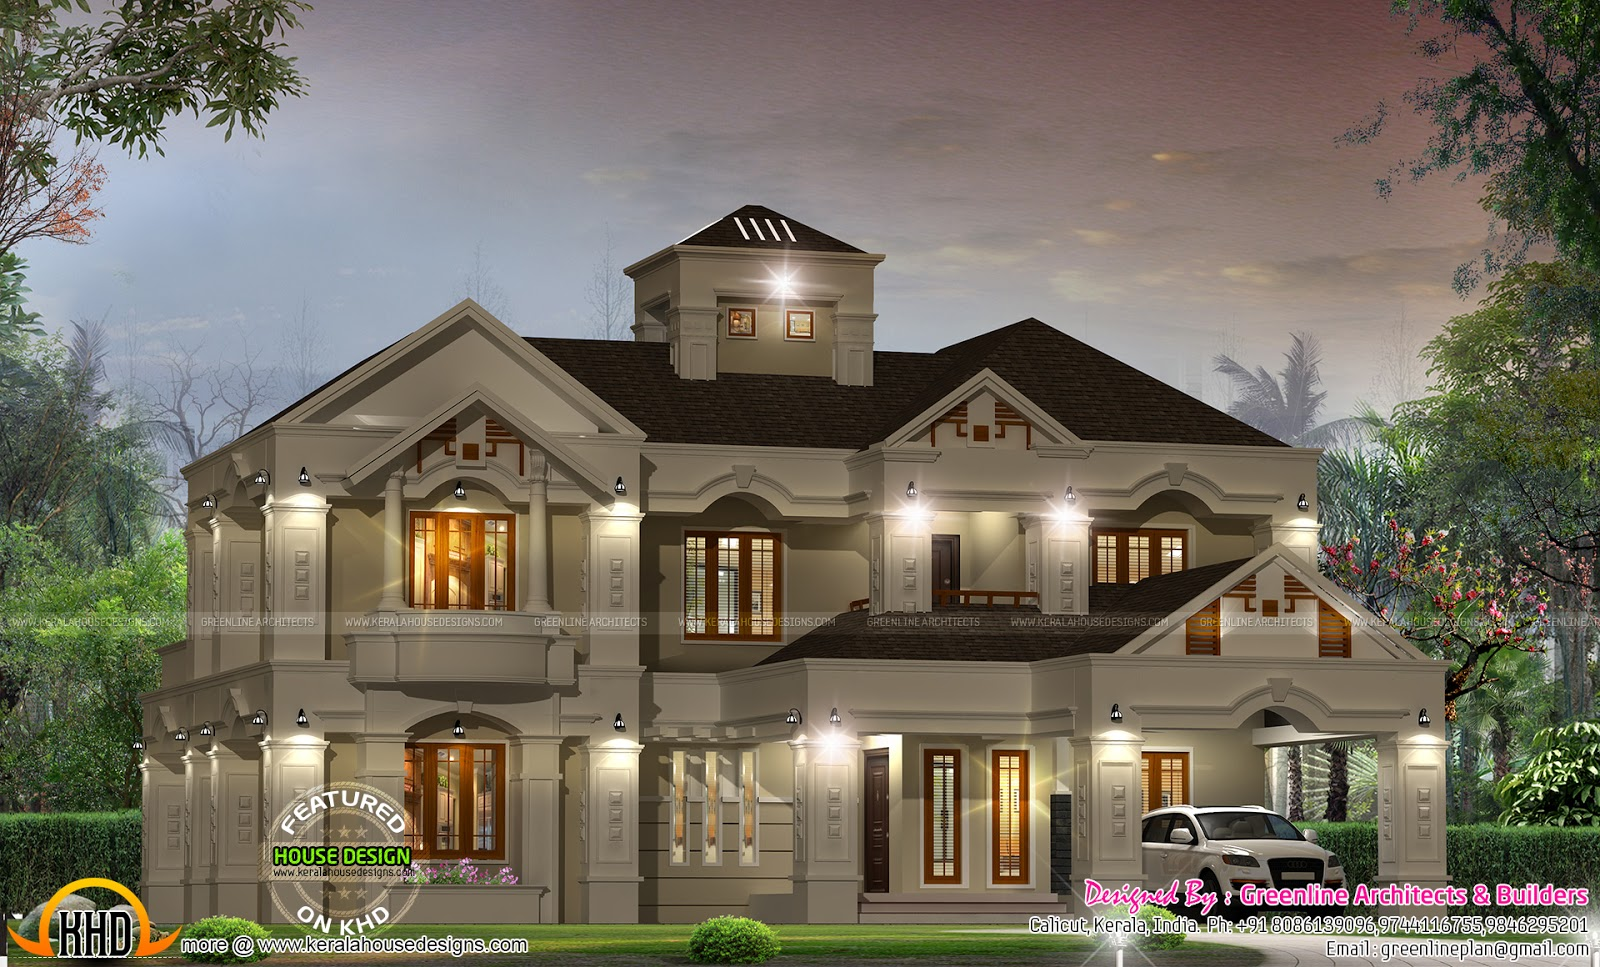 Luxury villa design in kerala kerala home design and for Luxury home designers